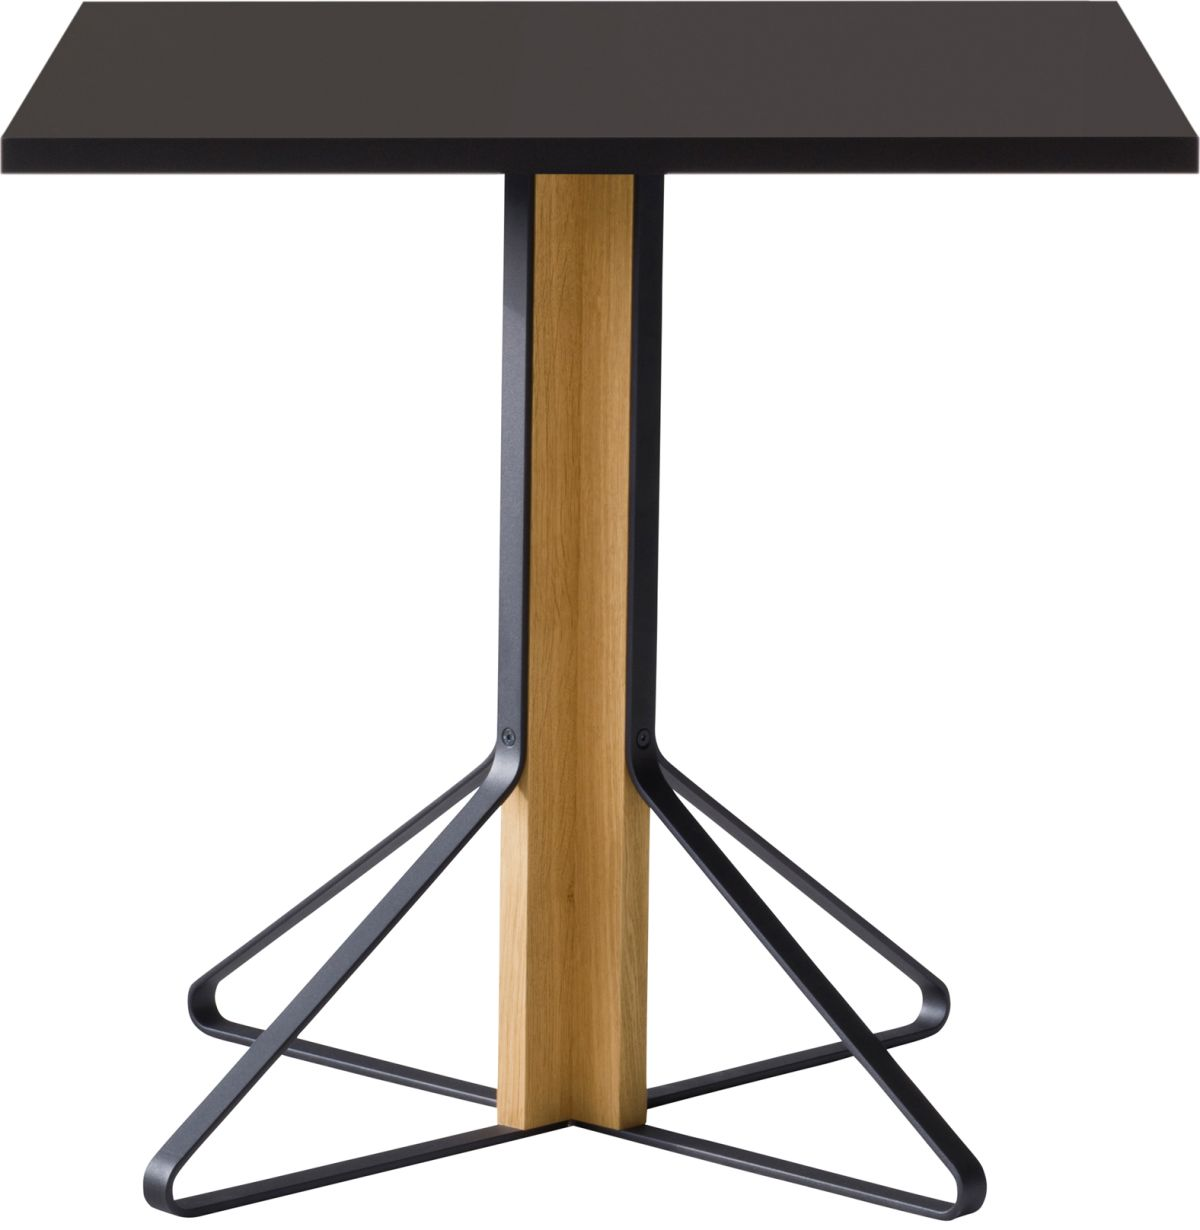 Kaari_Table_square_legs natural oak_top black linoleum